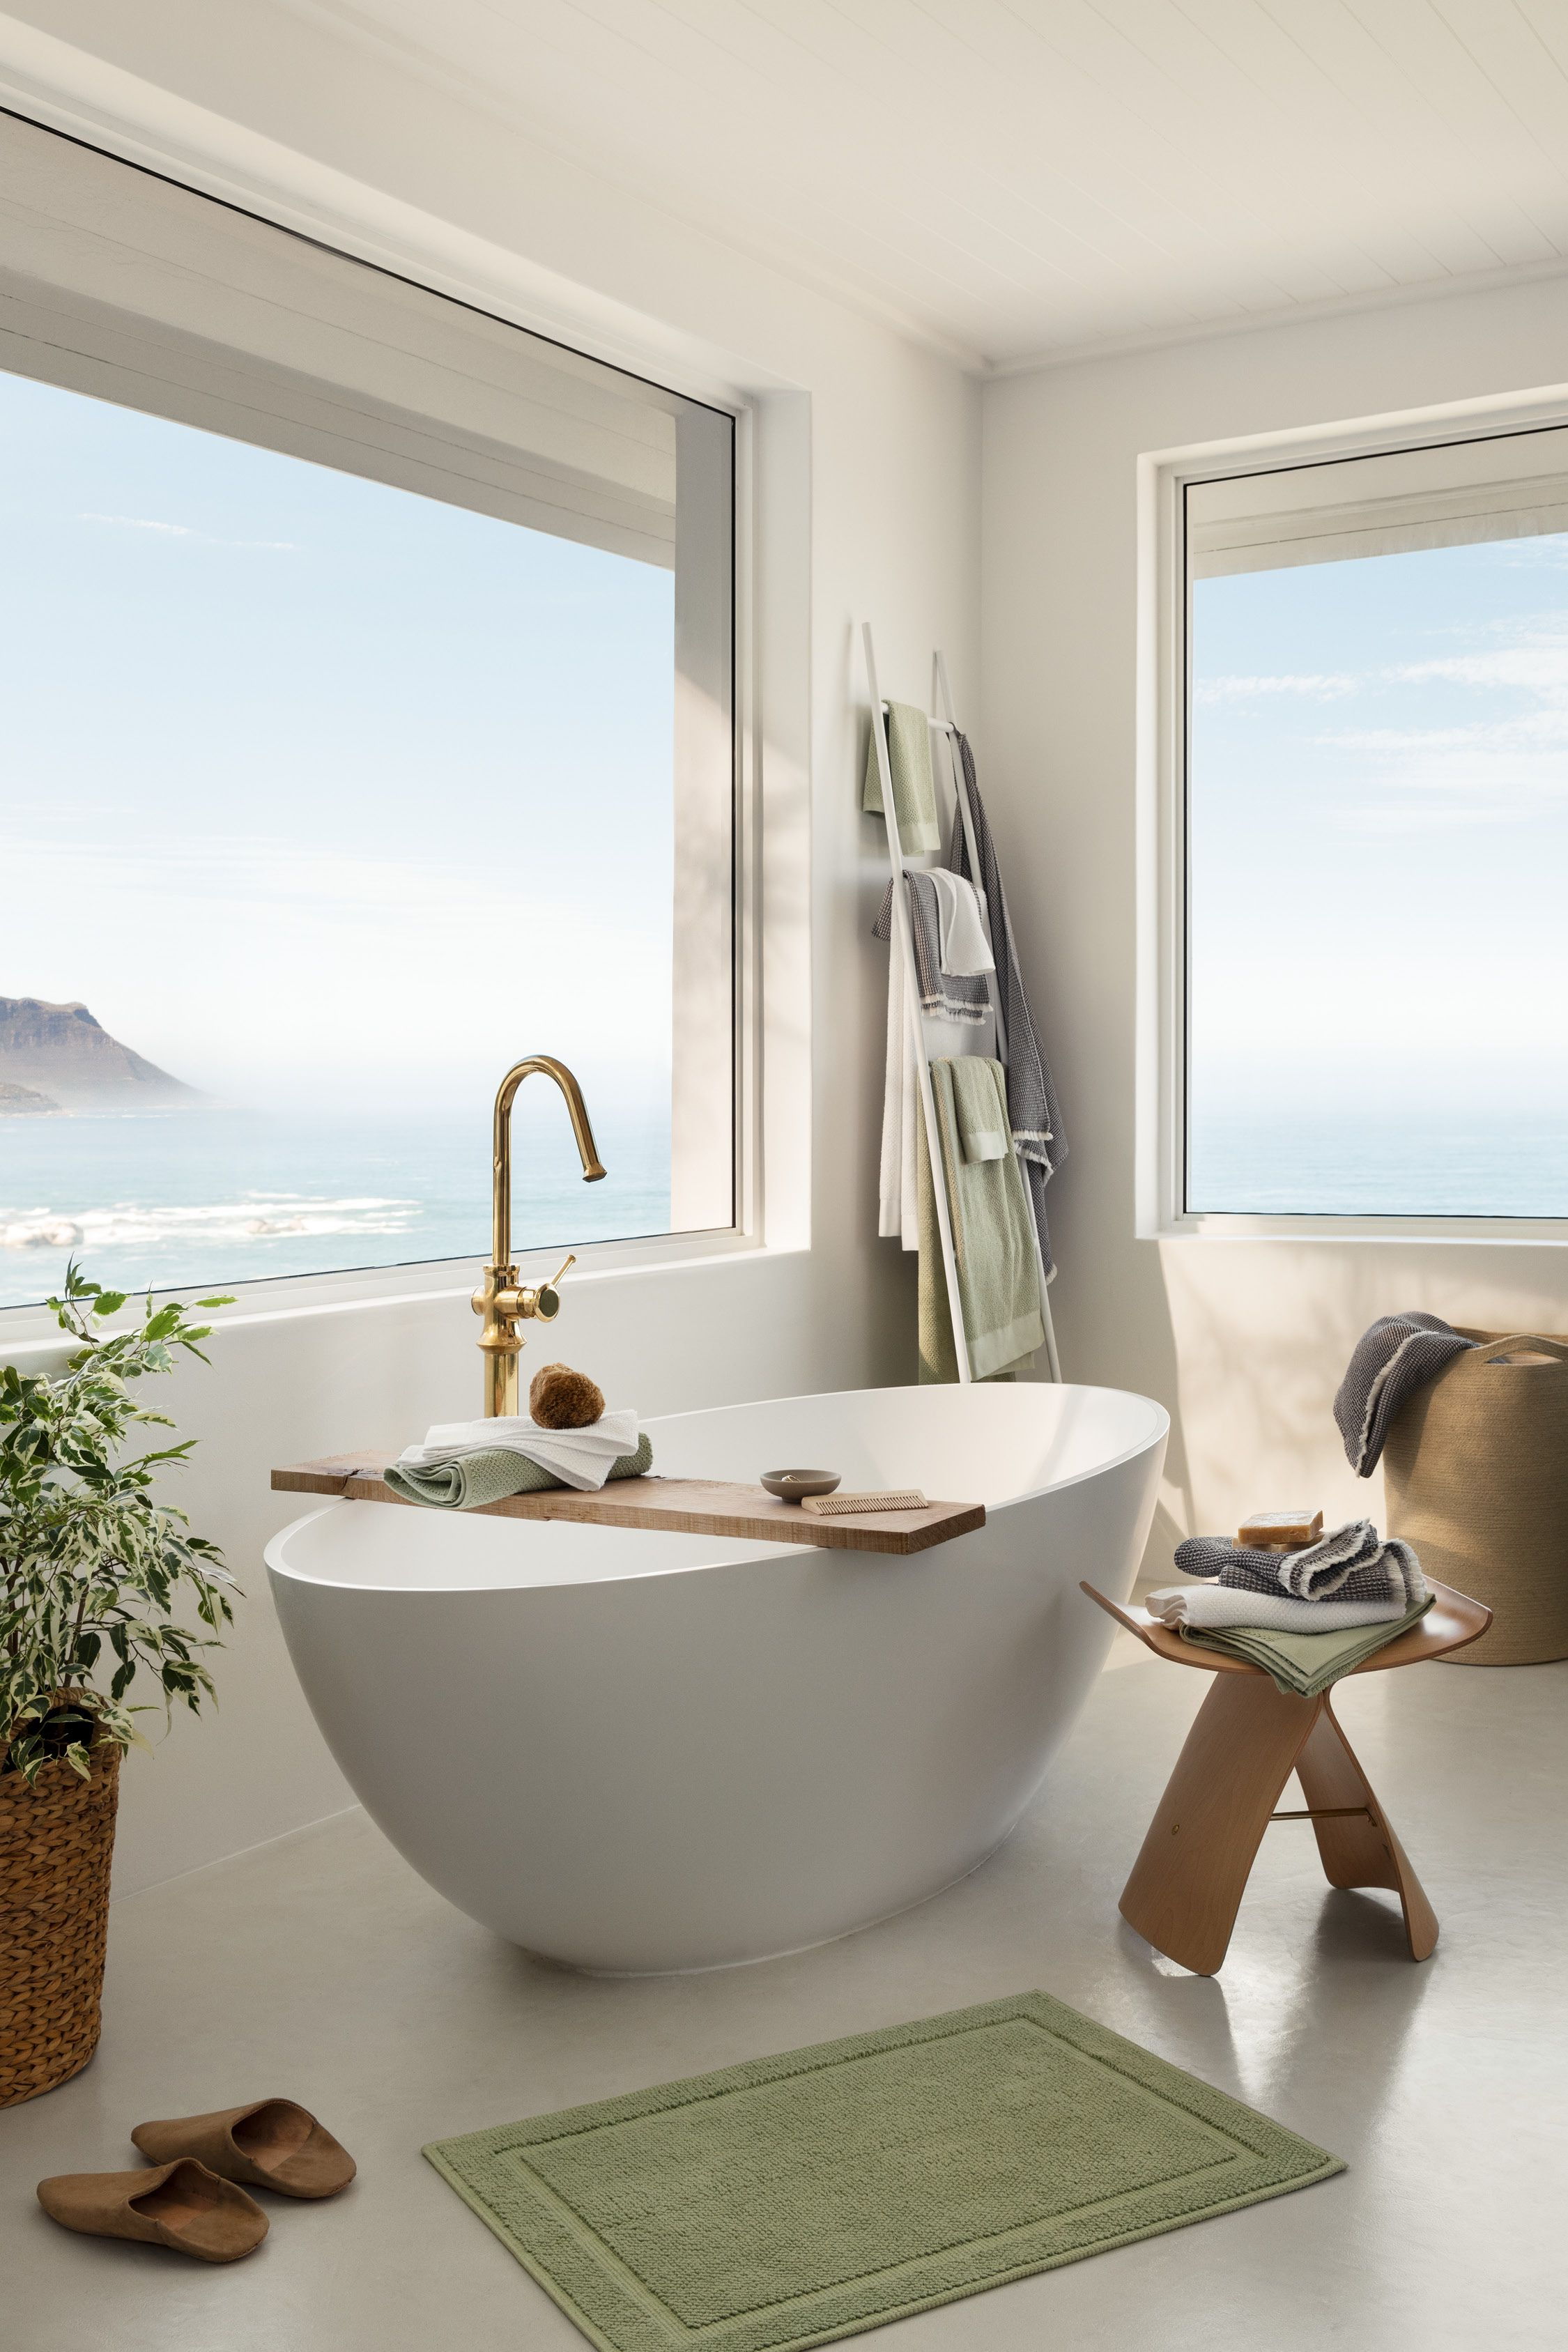 The Bathroom Of Your Dreams Can Easily Be Achieved With Just A Few Simple Updates Fluffy Oversized Towels Sce In 2020 H M Home Minimalist Apartment Spa Like Bathroom